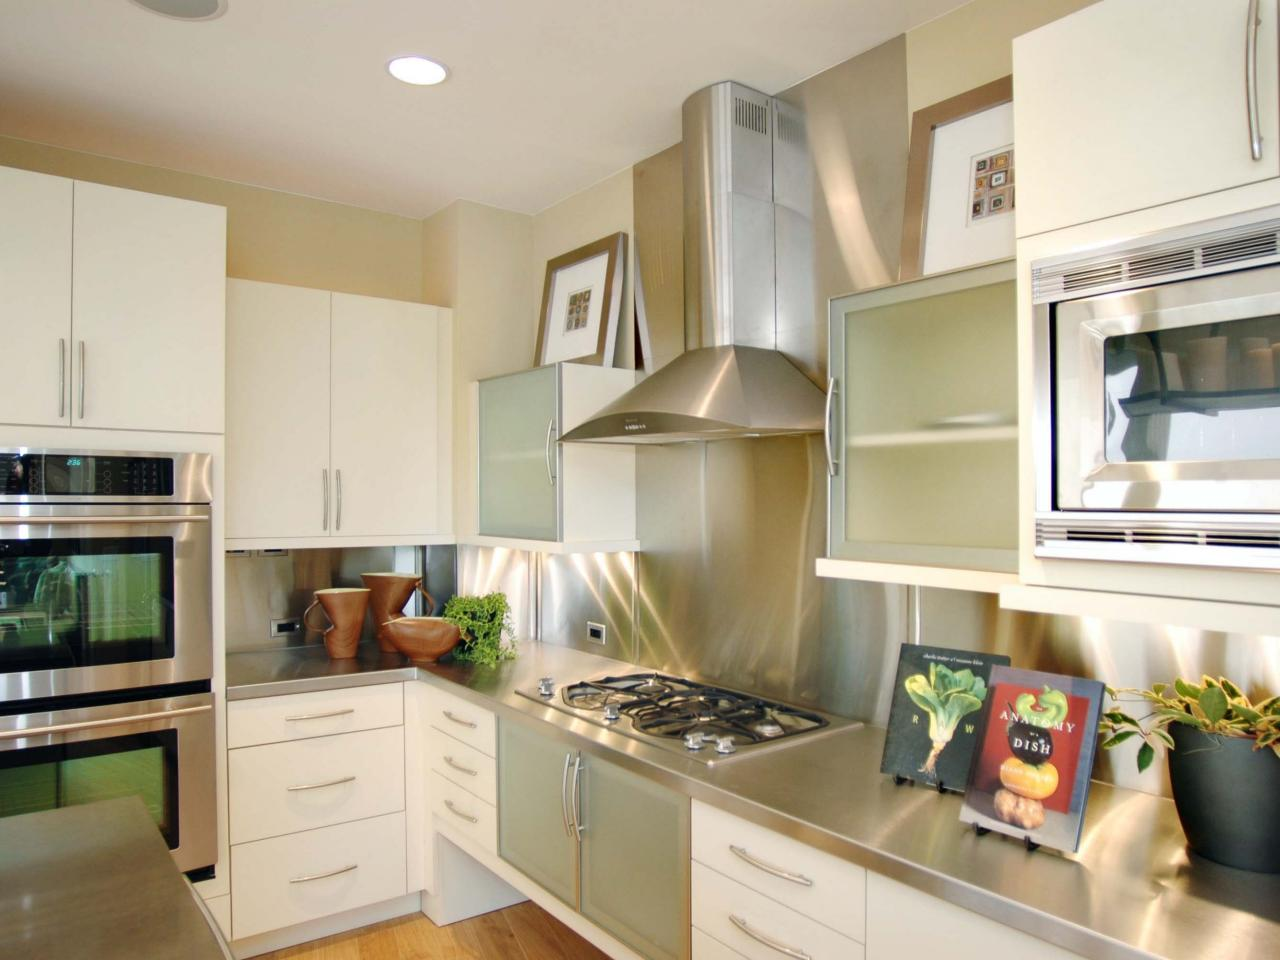 mid range kitchen cabinets compact kitchens appliance buying guide designs choose